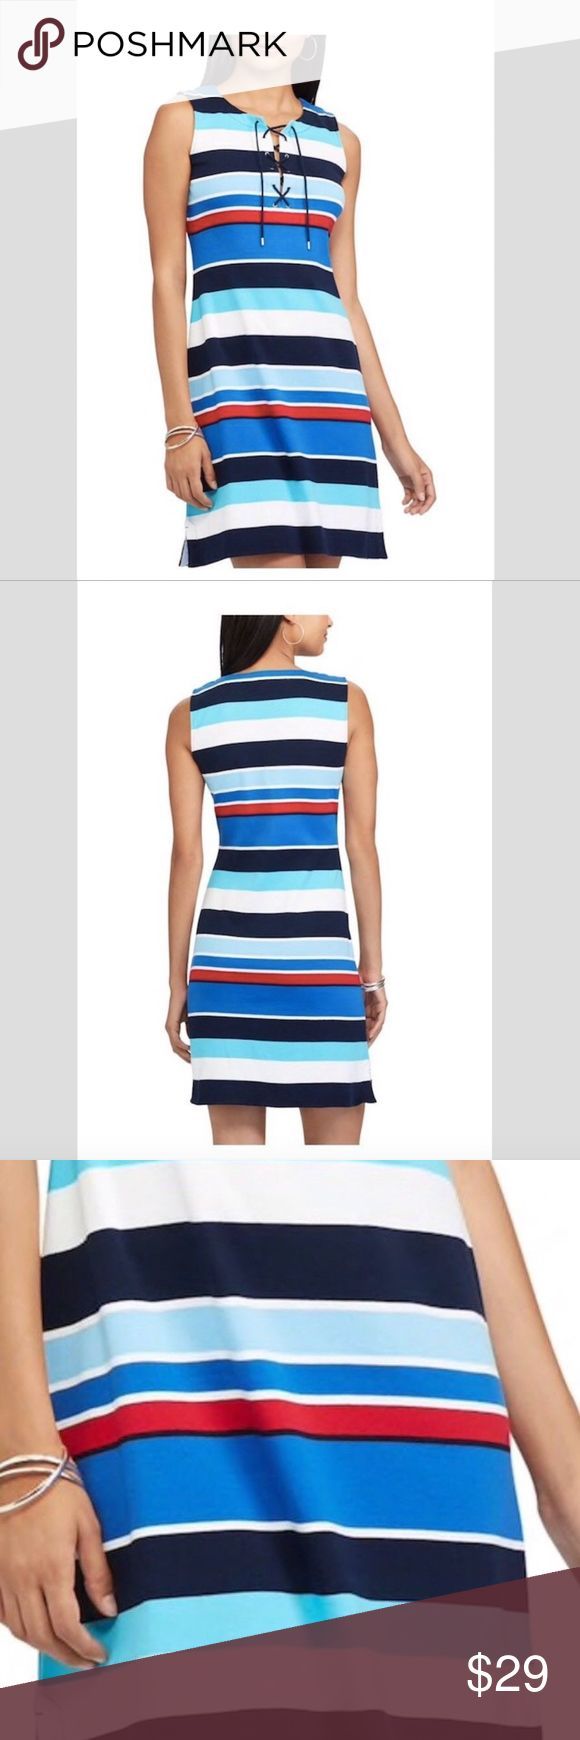 """CHAPS Ralph Lauren Women's Slim Fitting Dress CHAPS Ralph Lauren Women's Stripe Lace-up Dress Cotton Size  XL NEW $69  Please check images for further details.   ***This beautiful elegant Dress is runs small, PLEASE check measurements before you buy. TY  Apx. Measurements: Garment laid flat not stretched.  X Large:  Armpit to Armpit: 20""""  Shoulder to shoulder: 15""""  Length from shoulder to Hem: 39""""  Waist: 18"""" Chaps Dresses"""